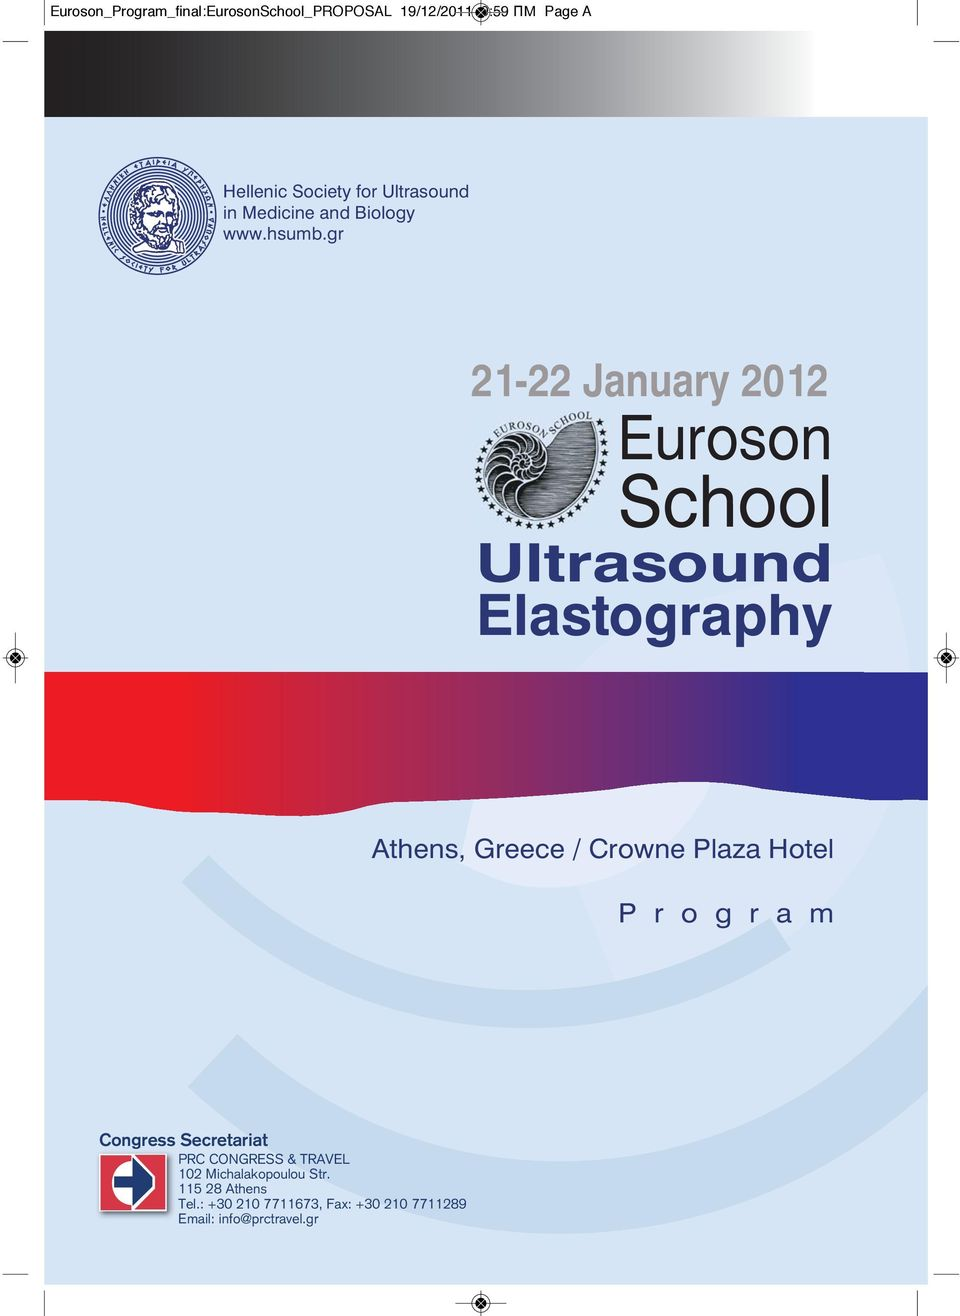 gr 21-22 January 2012 Euroson School Ultrasound Elastography Athens, Greece / Crowne Plaza Hotel P